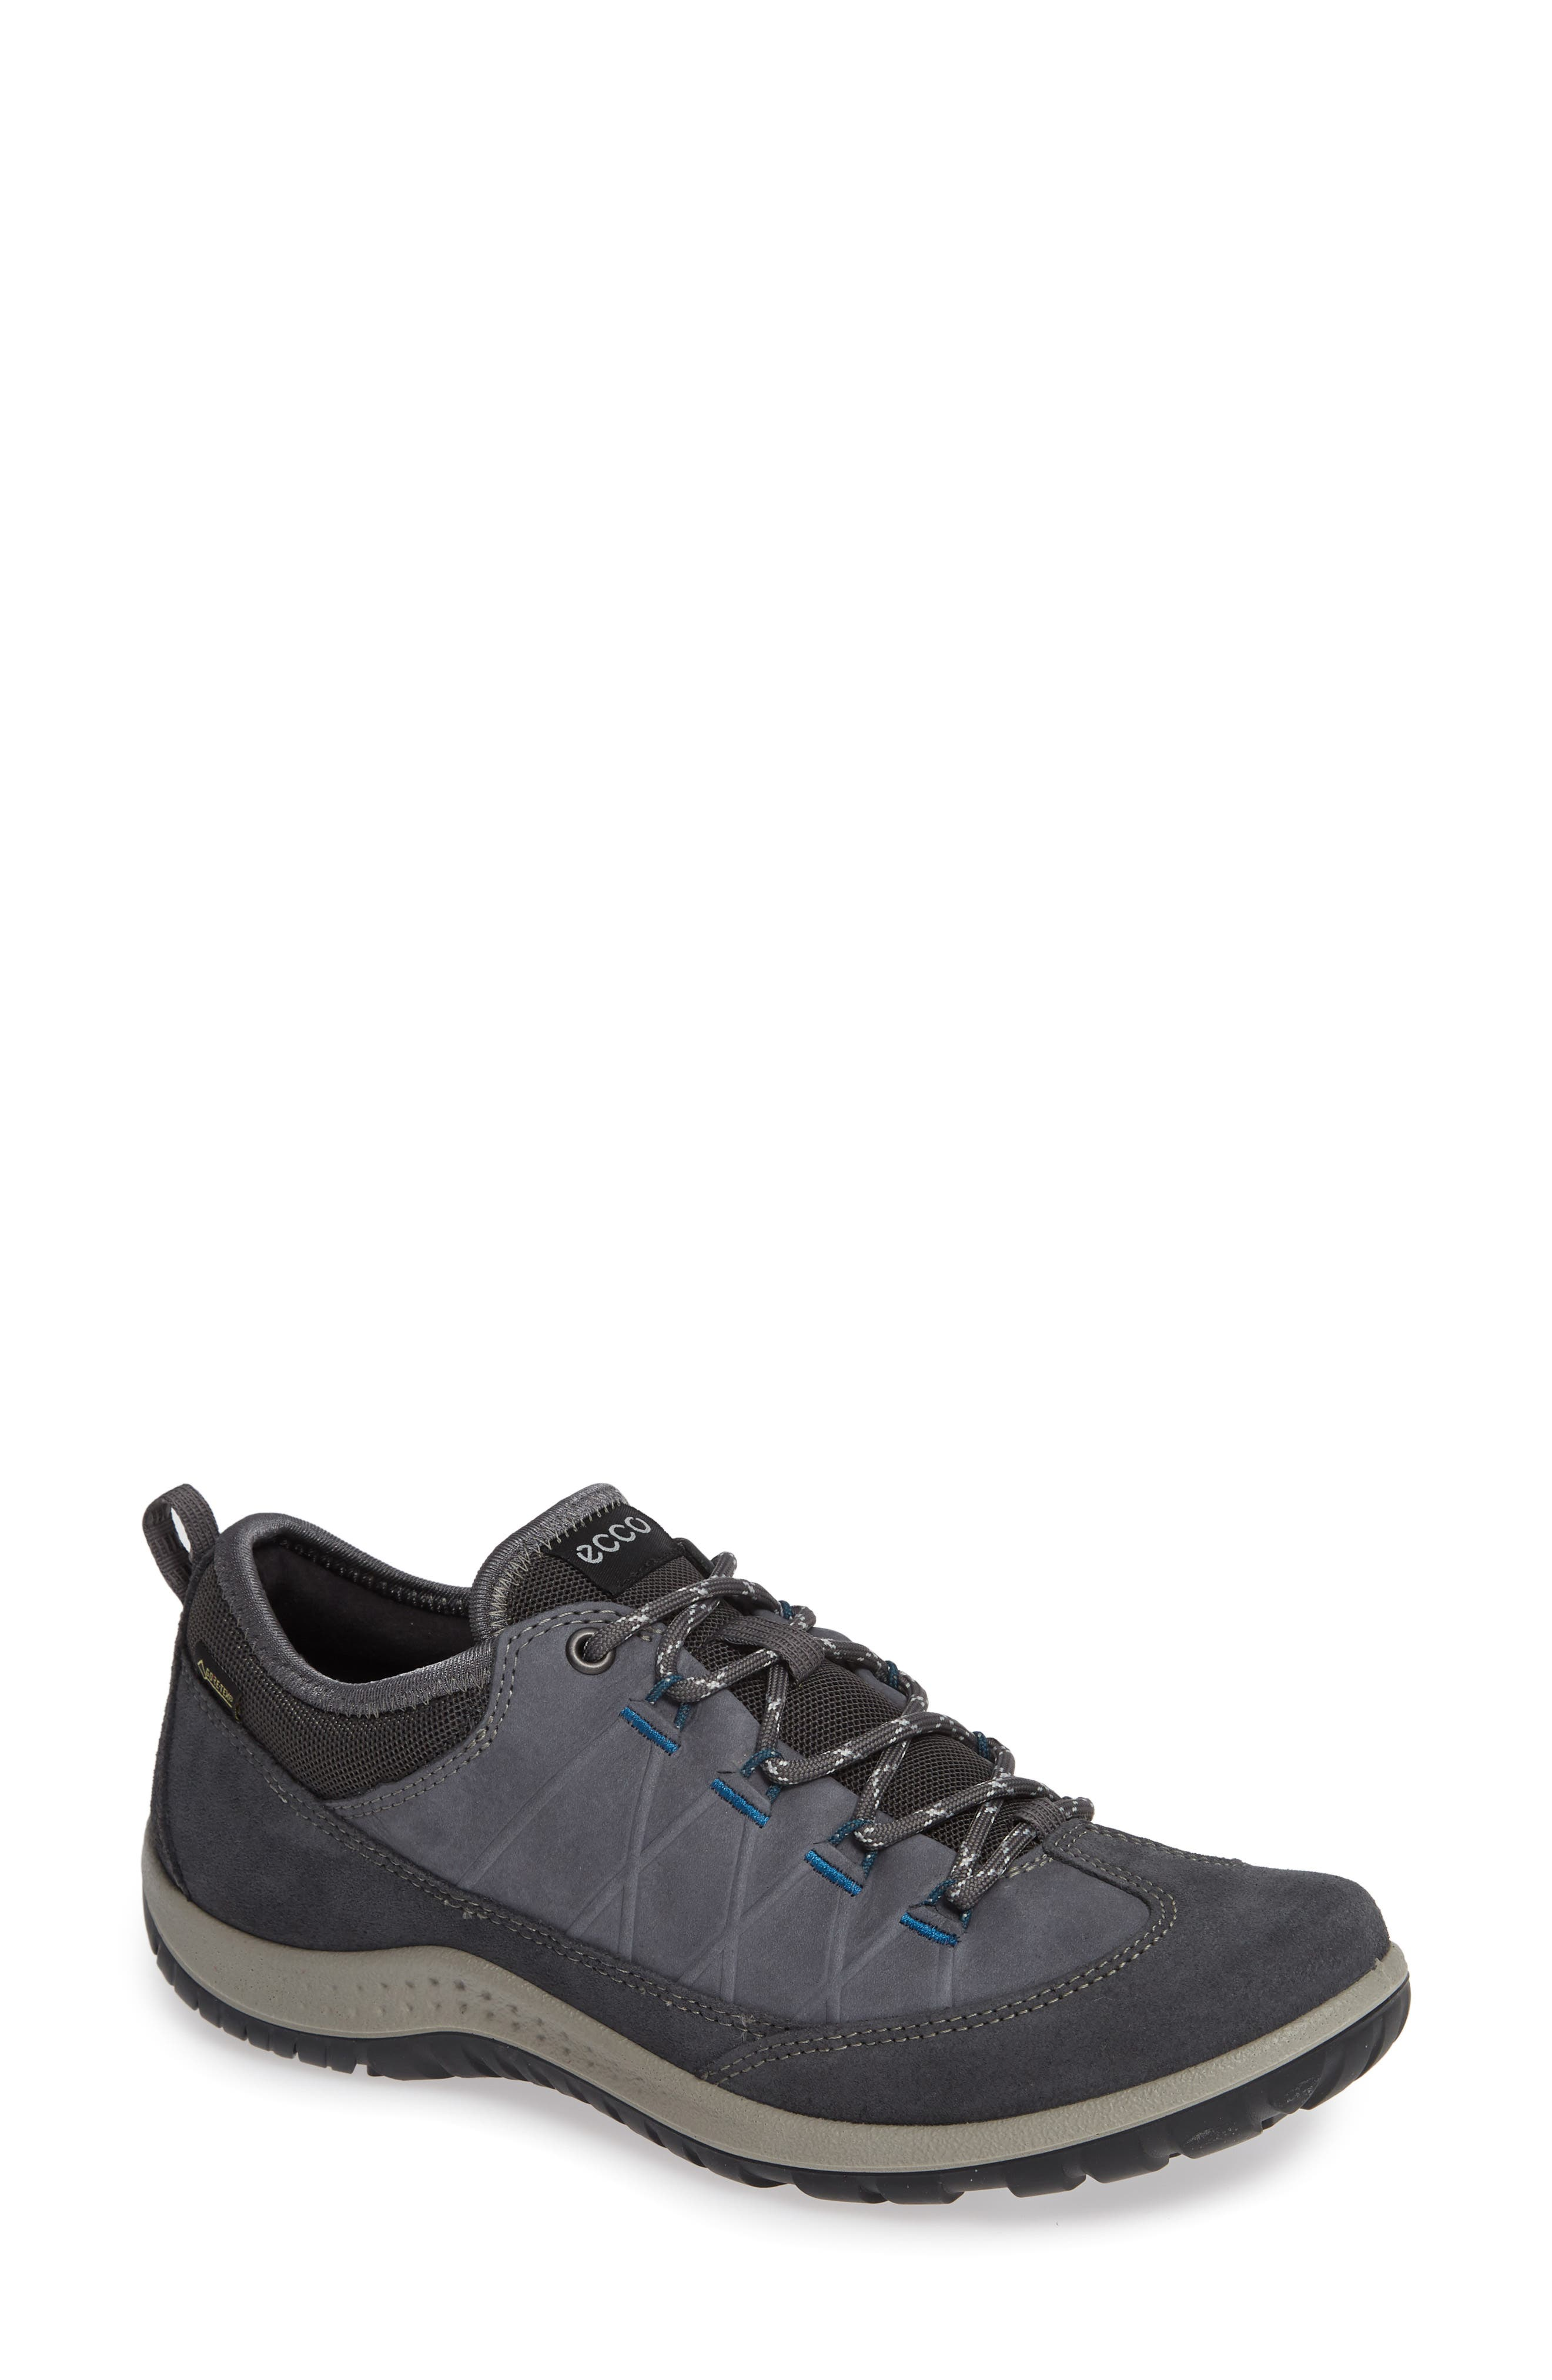 'Aspina GTX' Waterproof Sneaker,                             Main thumbnail 1, color,                             057